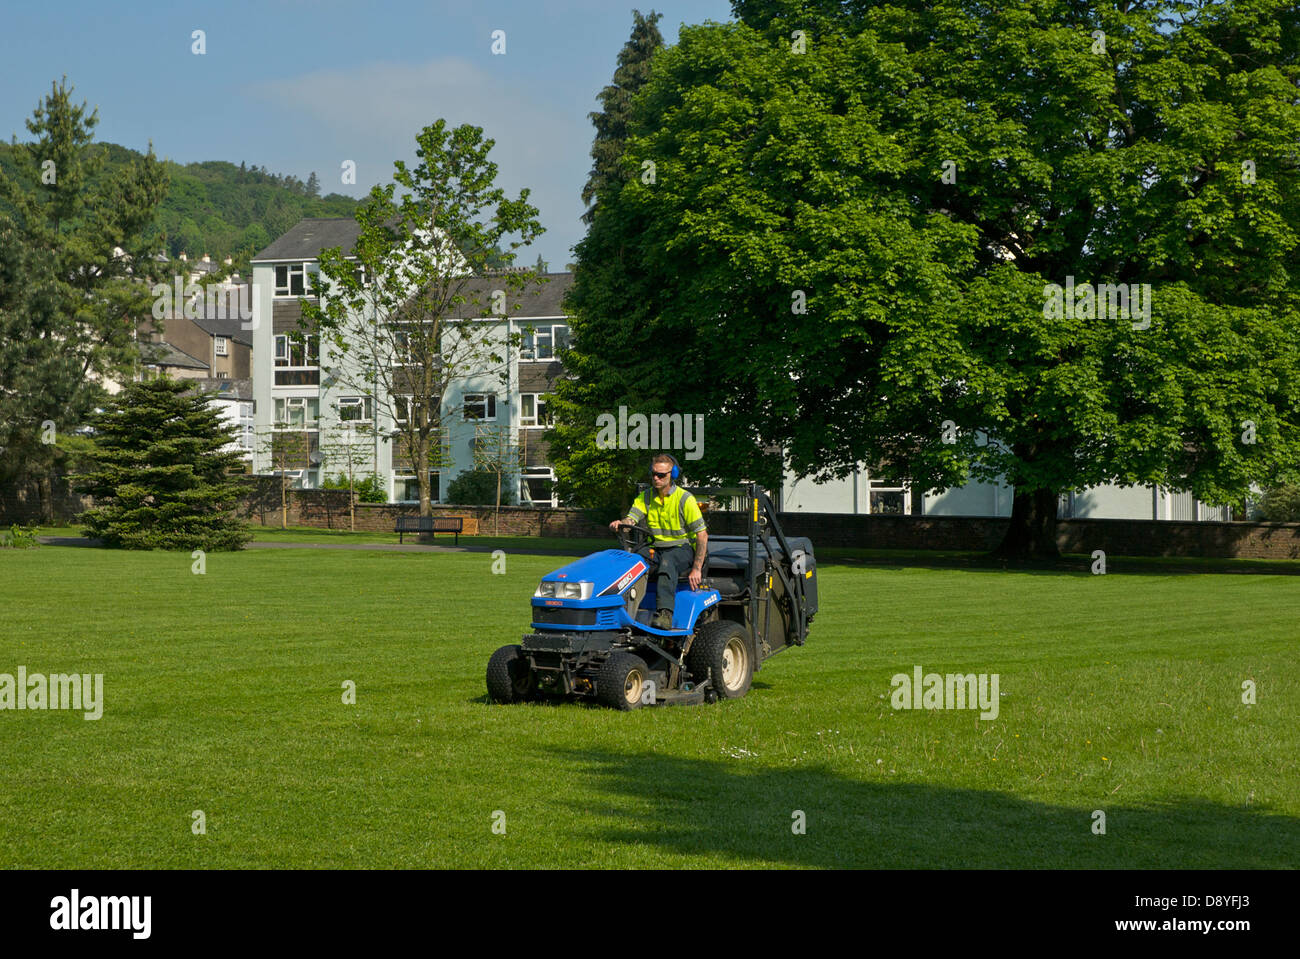 Council employee using ride-on mower to cut the grass in small park, Kendal, Cumbria, England UK - Stock Image